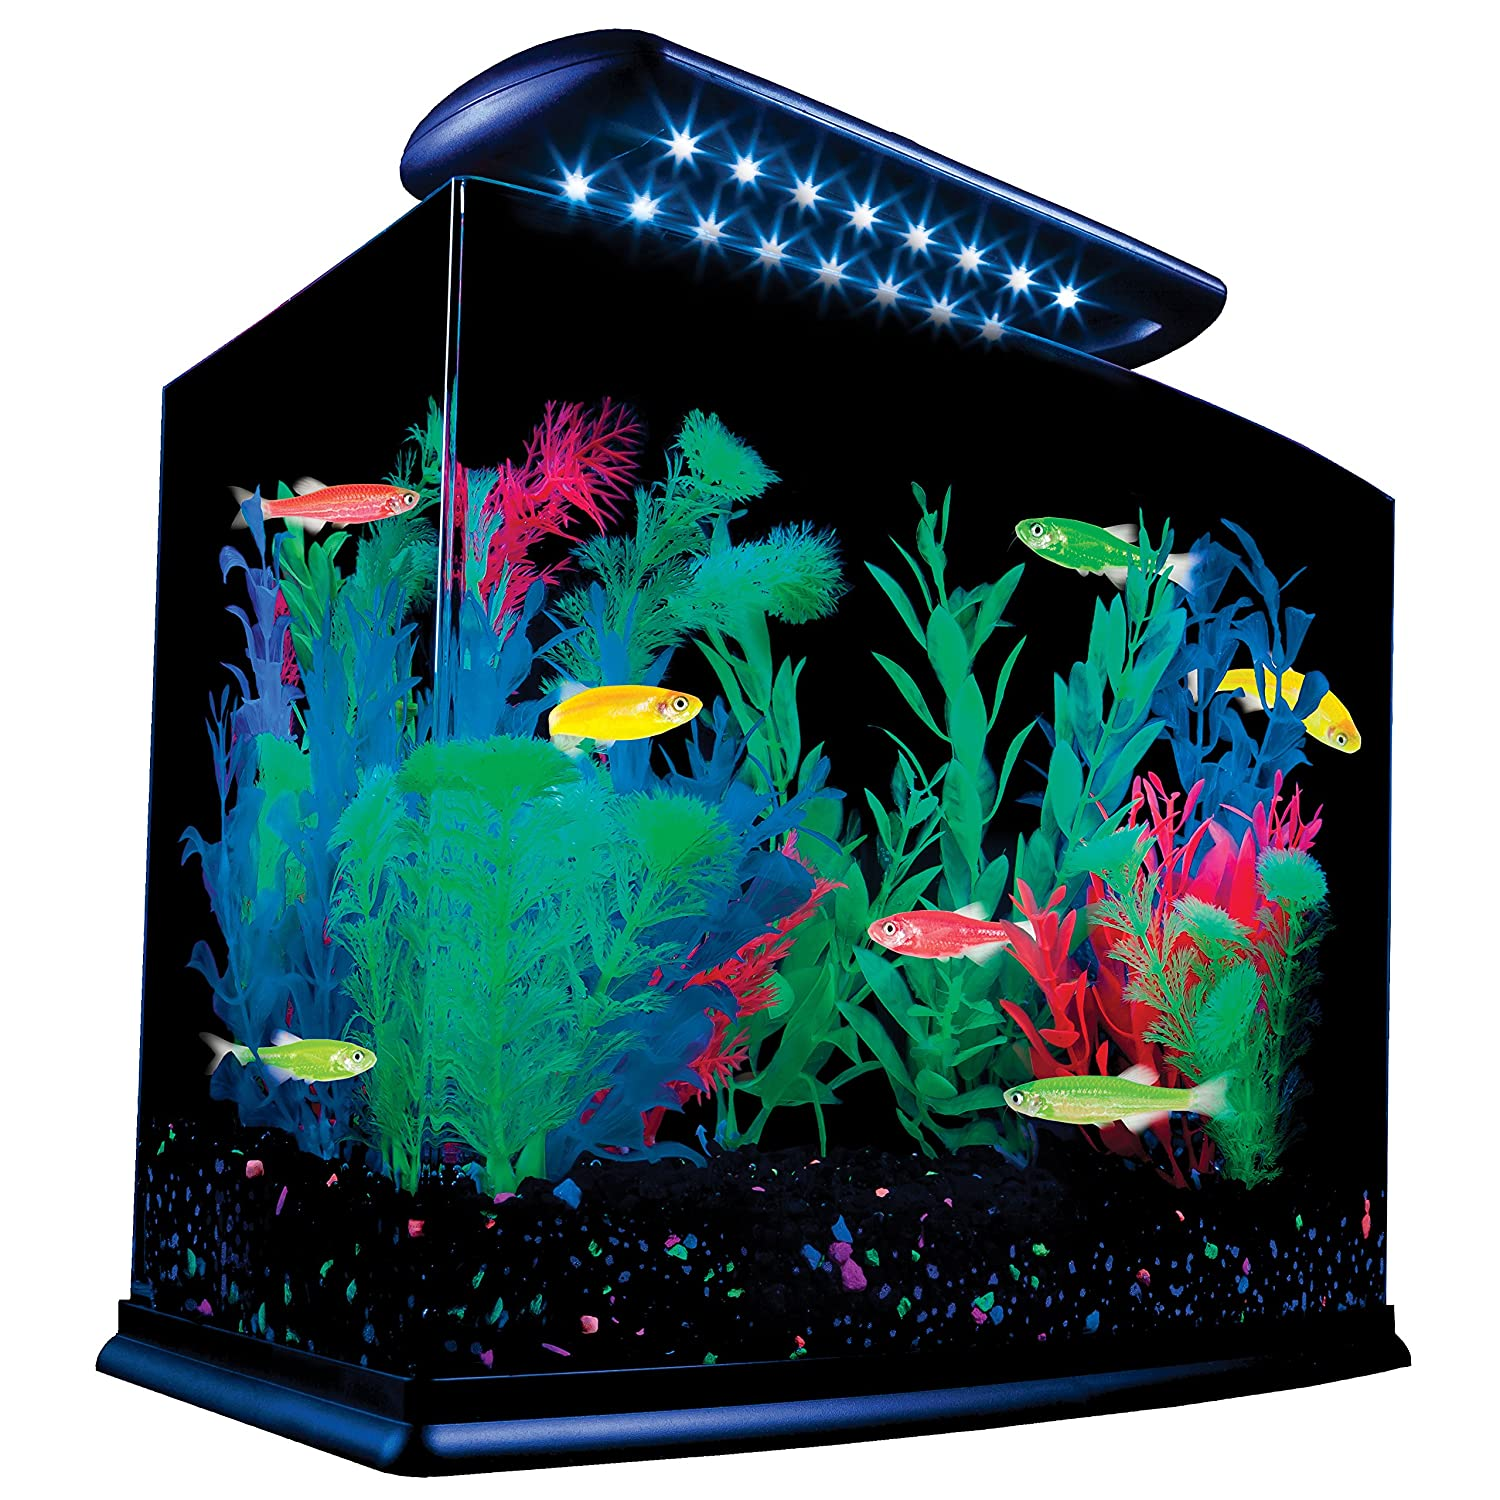 Aquarium water fish tank glass led light lamp kit decor for New fish tank